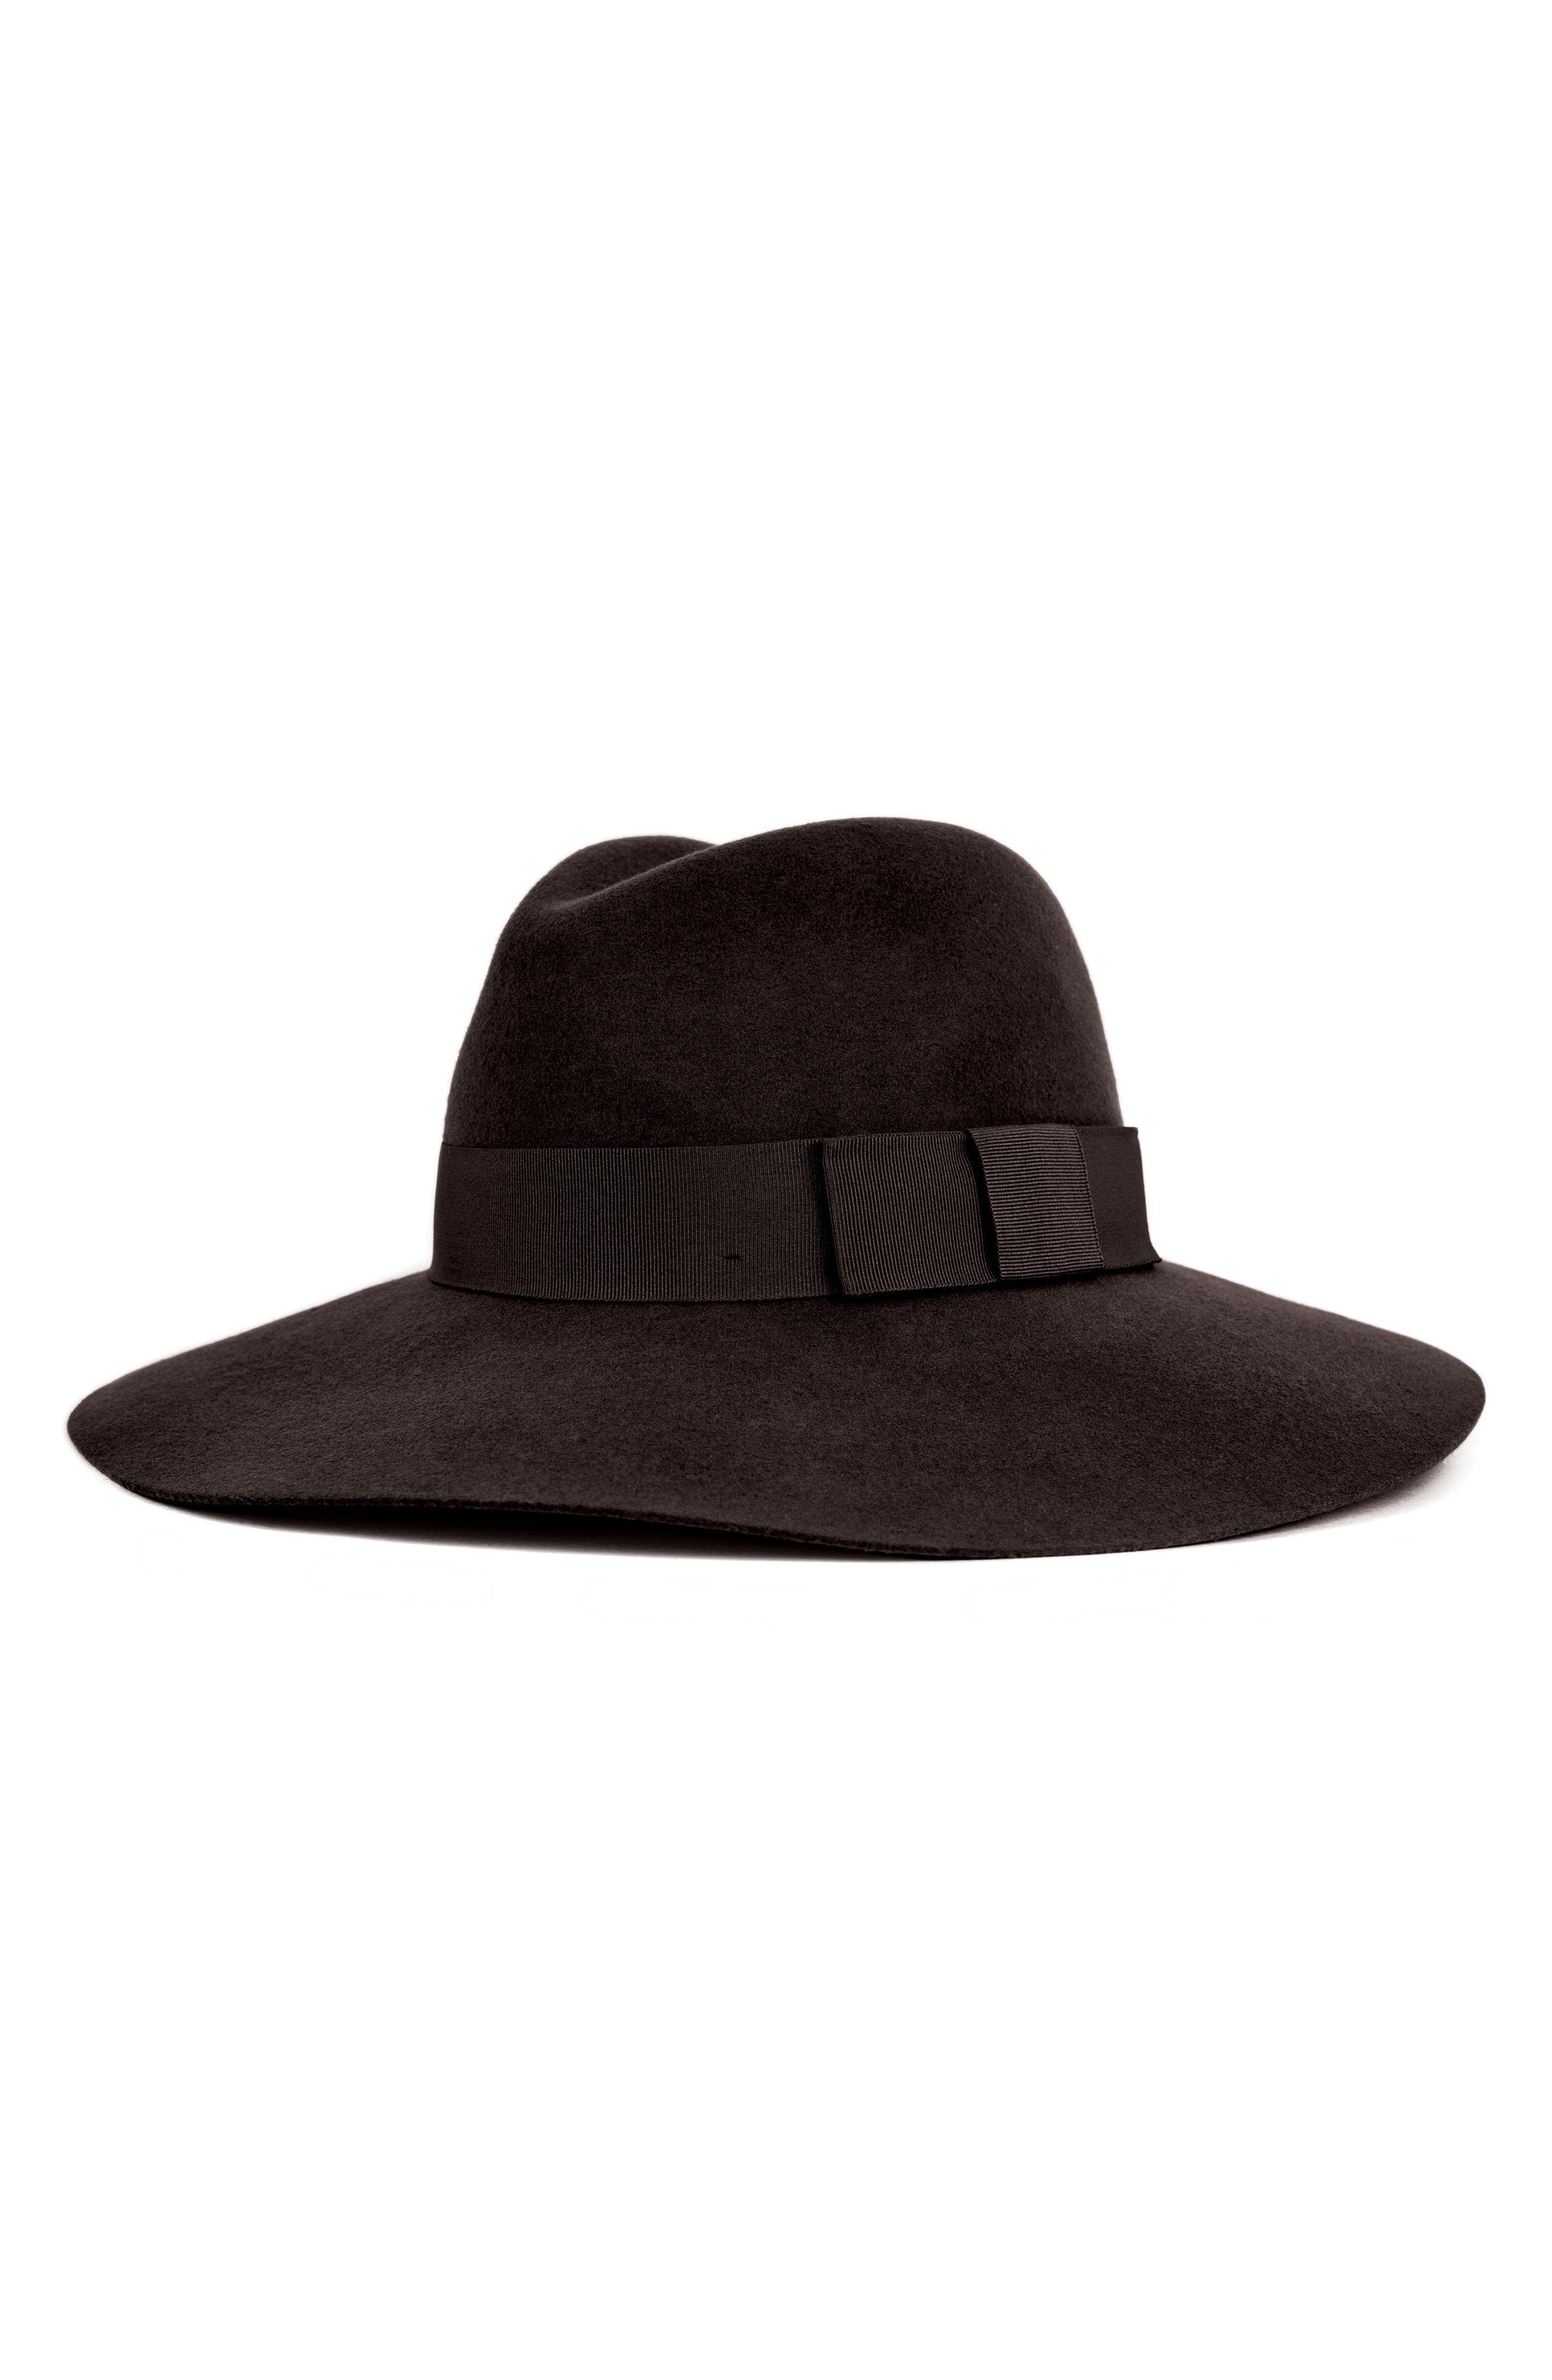 c3d88e308f Lyst - Brixton 'piper' Floppy Wool Hat - in Black - Save 50%